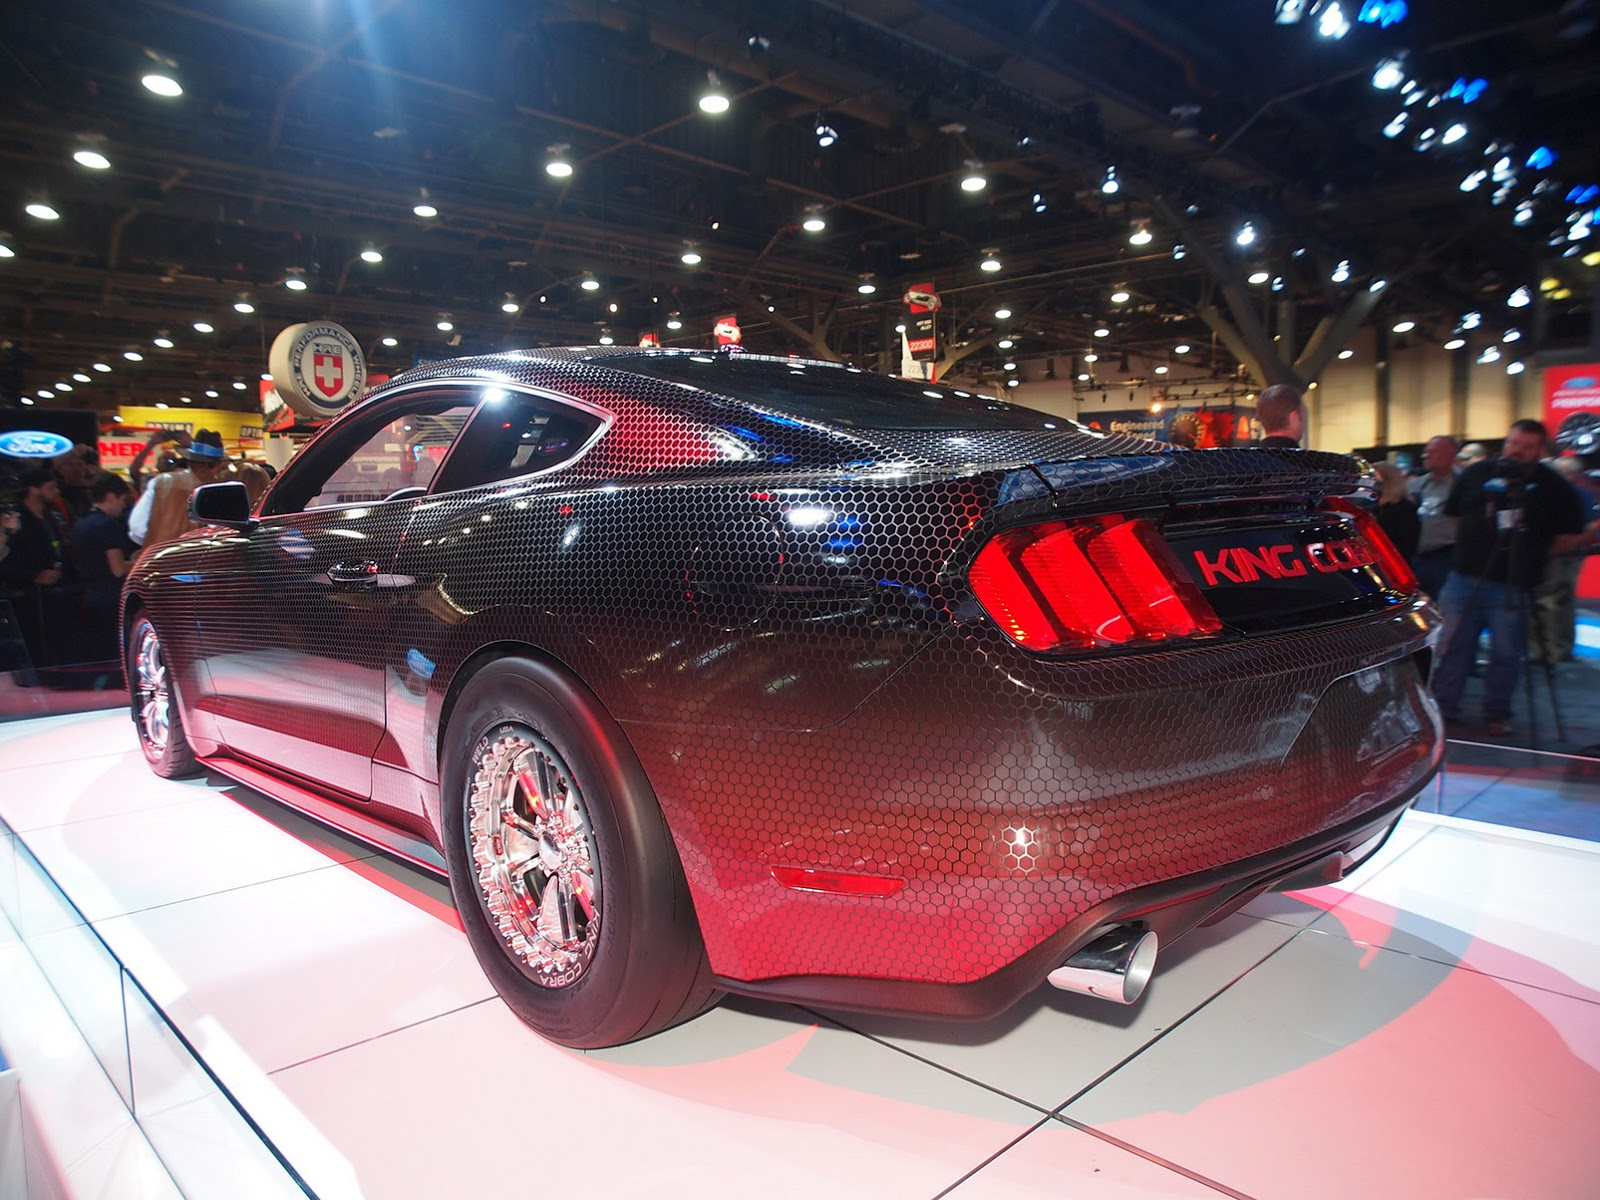 Ford S New King Cobra Mustang Will Get You To The 1 4 Mile